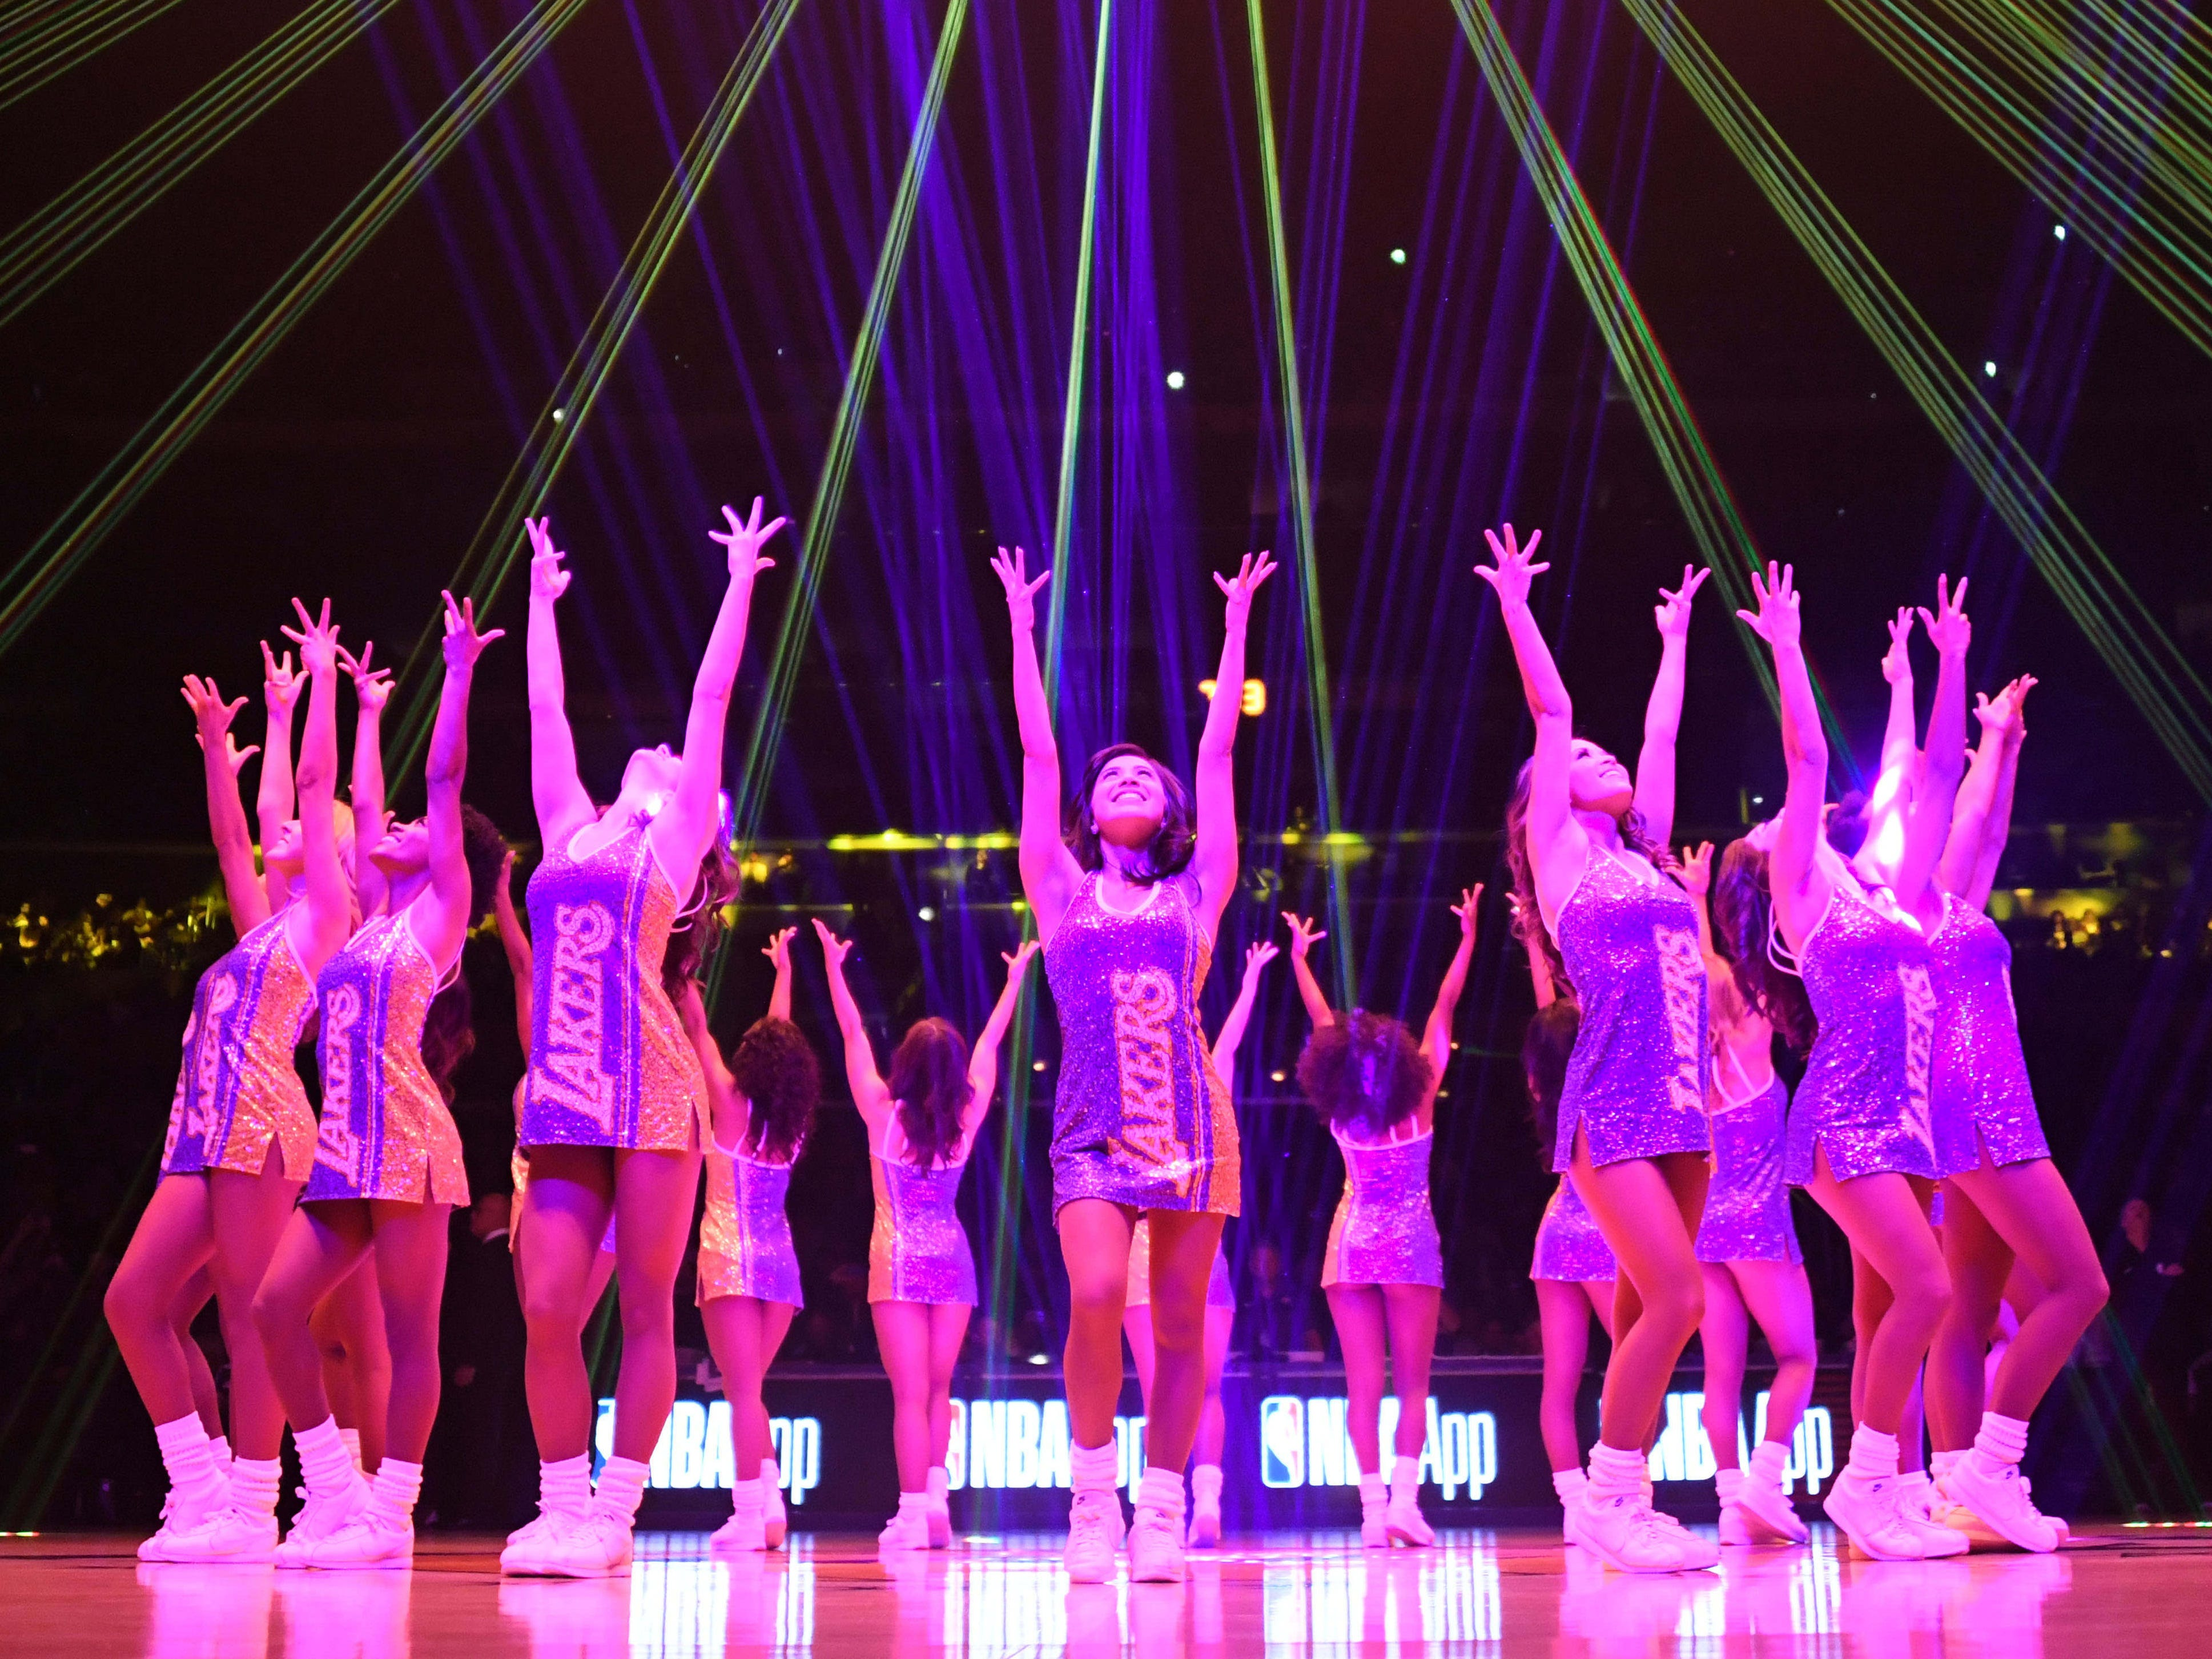 Jan. 9: The Laker Girls fired up the crowd before a game against the Pistons at Staples Center.